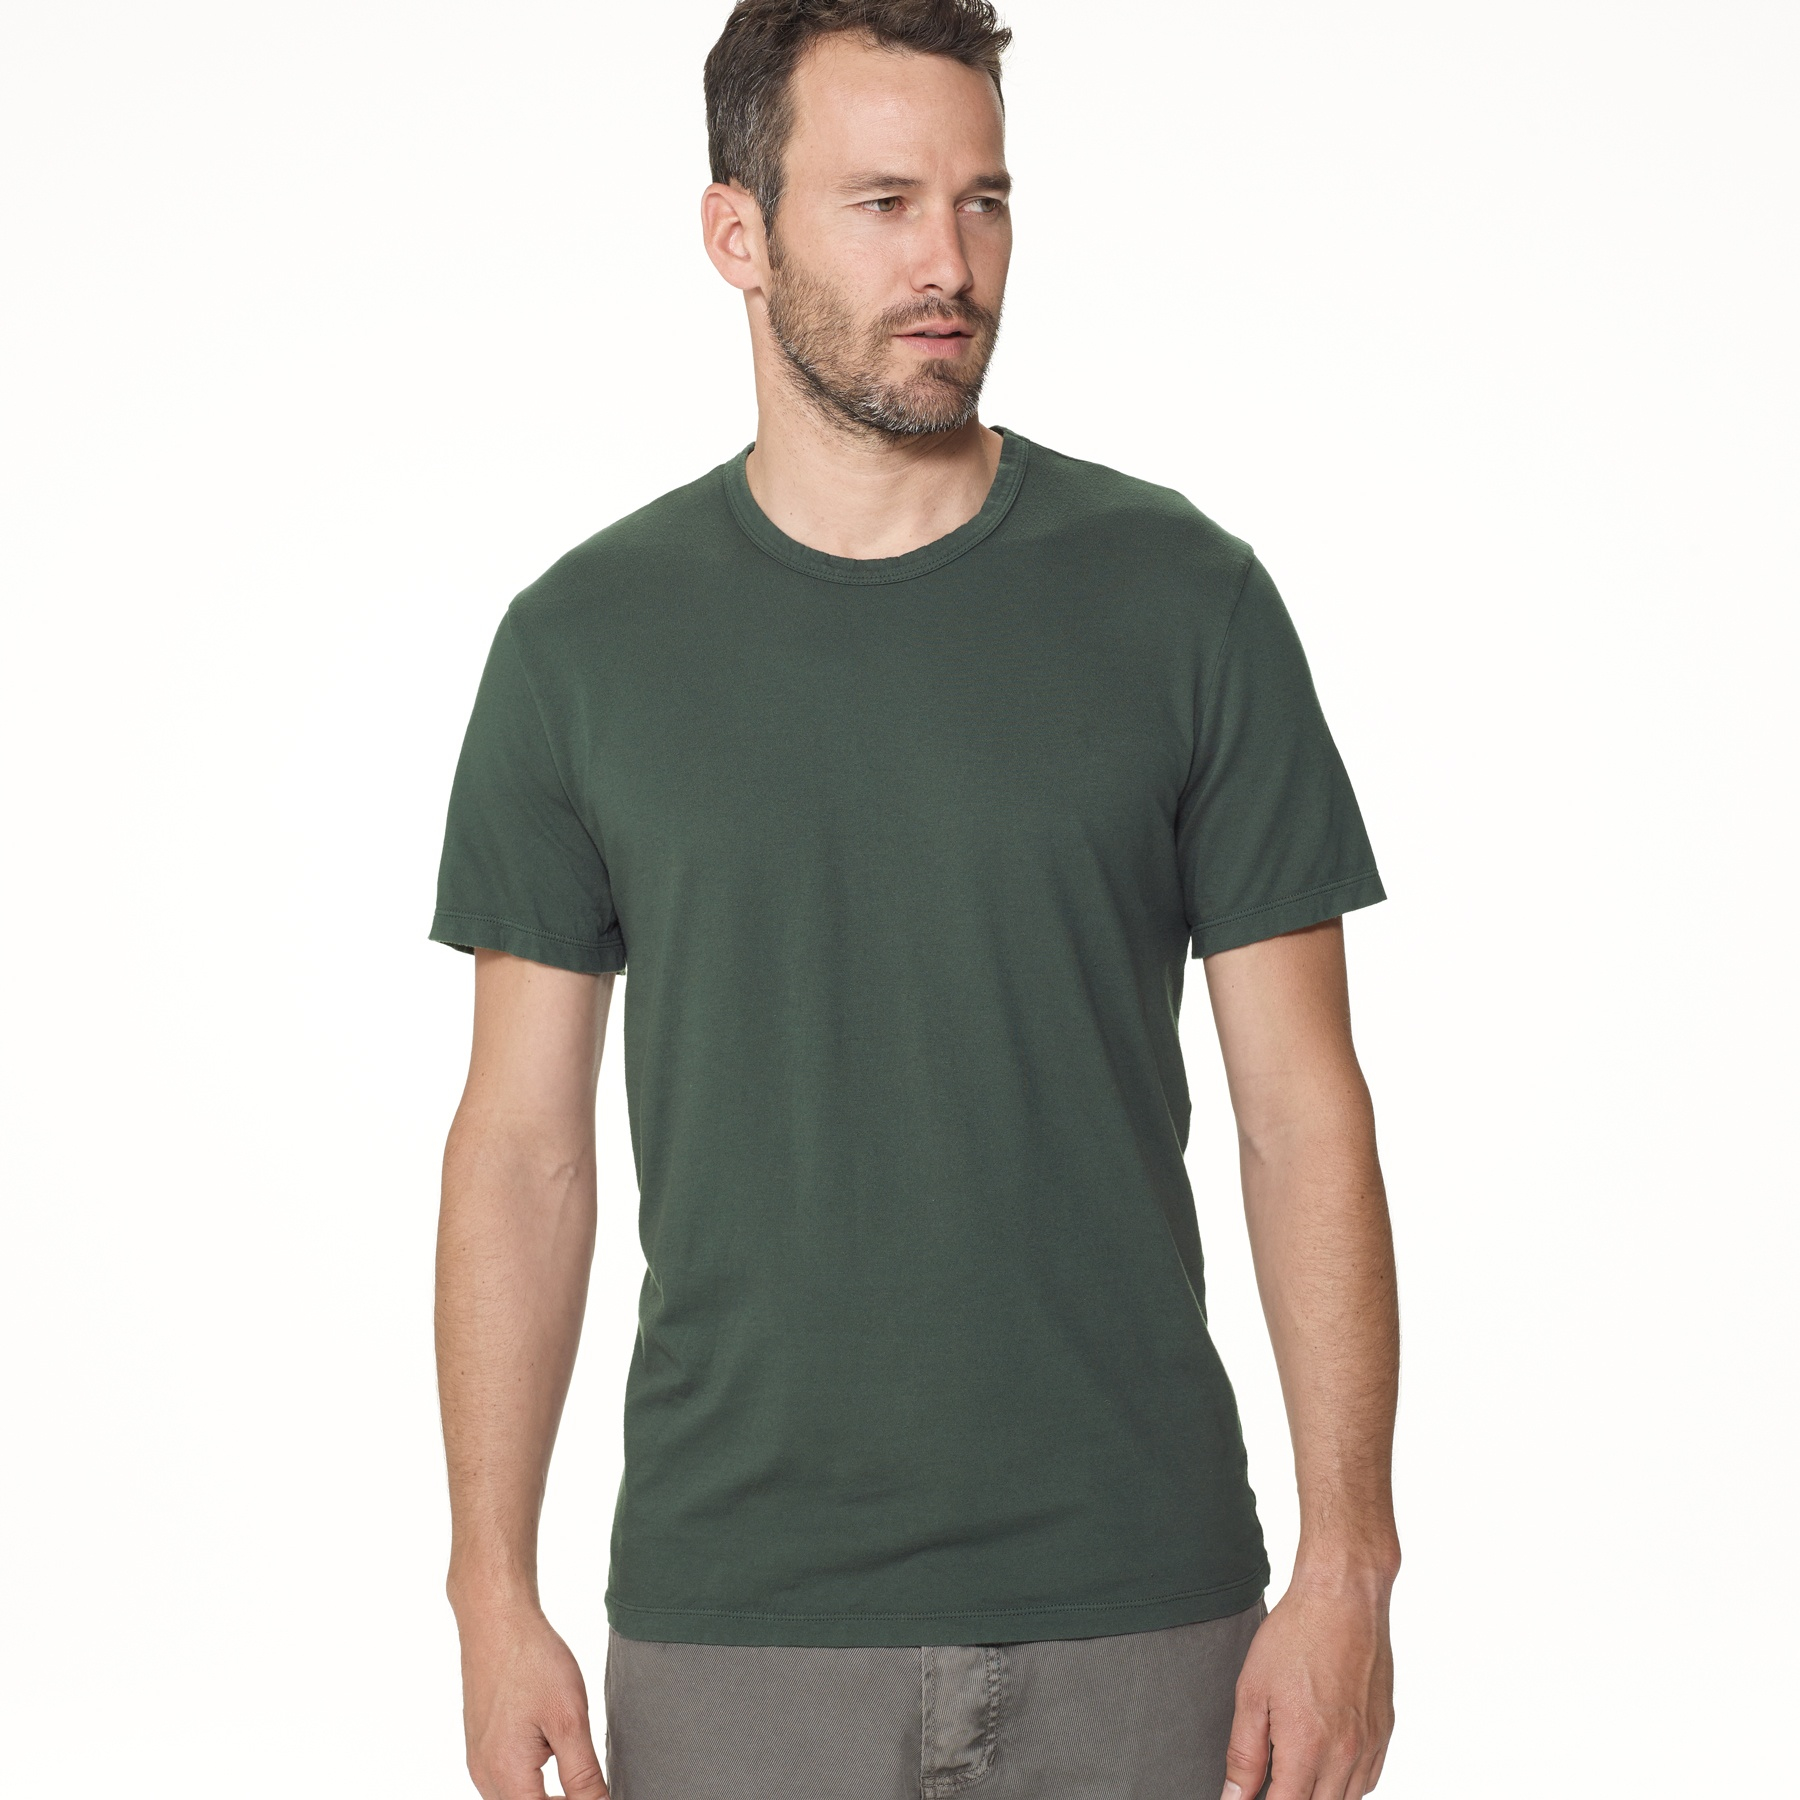 lyst james perse brushed cotton crew neck in green for men